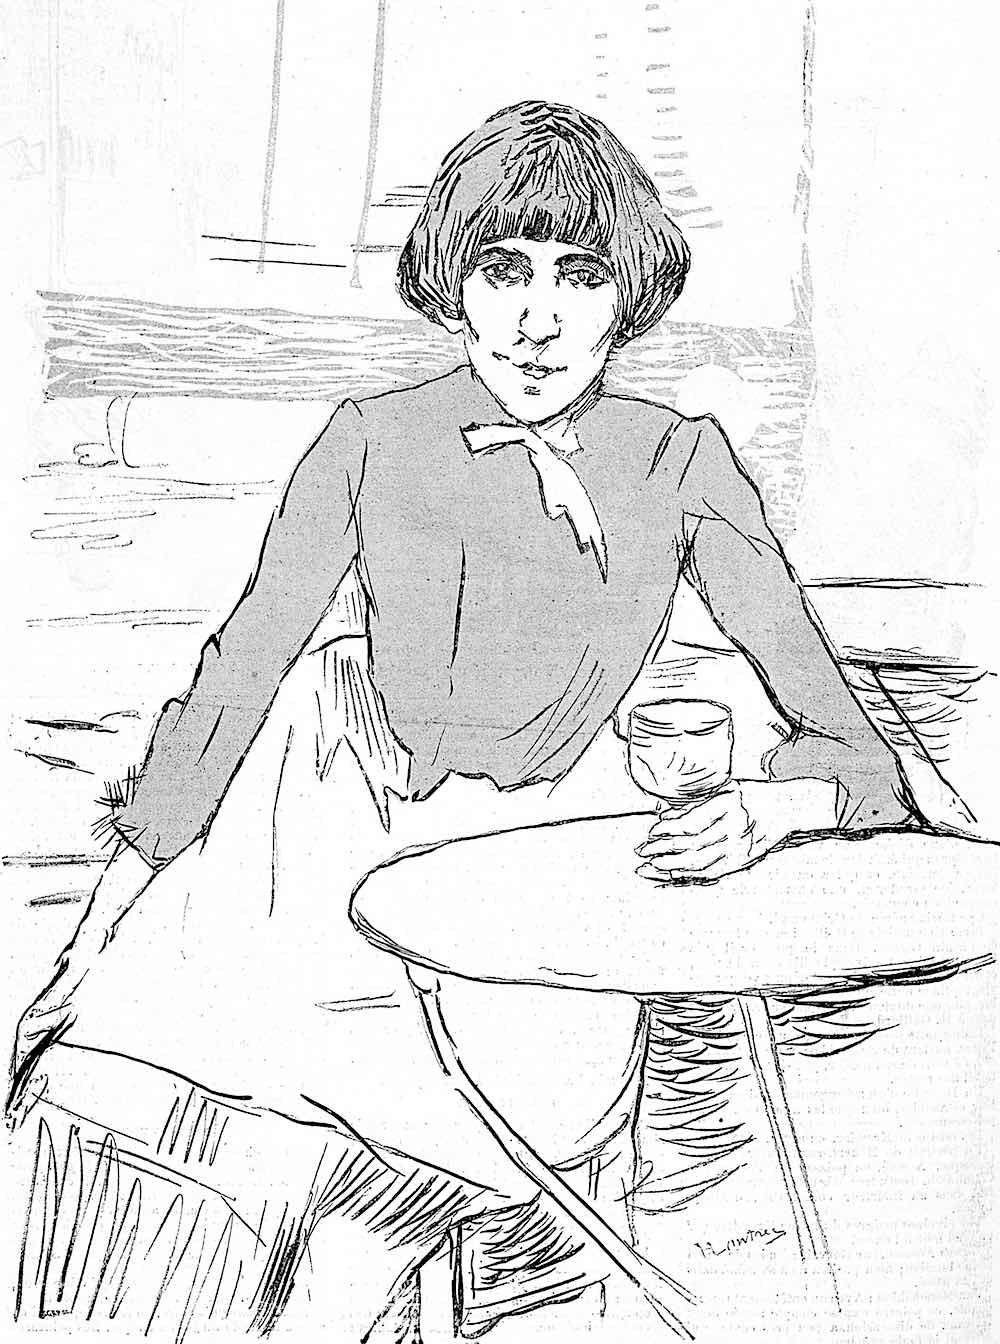 a drawing by Toulouse-Lautrec 1889, a woman sitting with a glass of wine